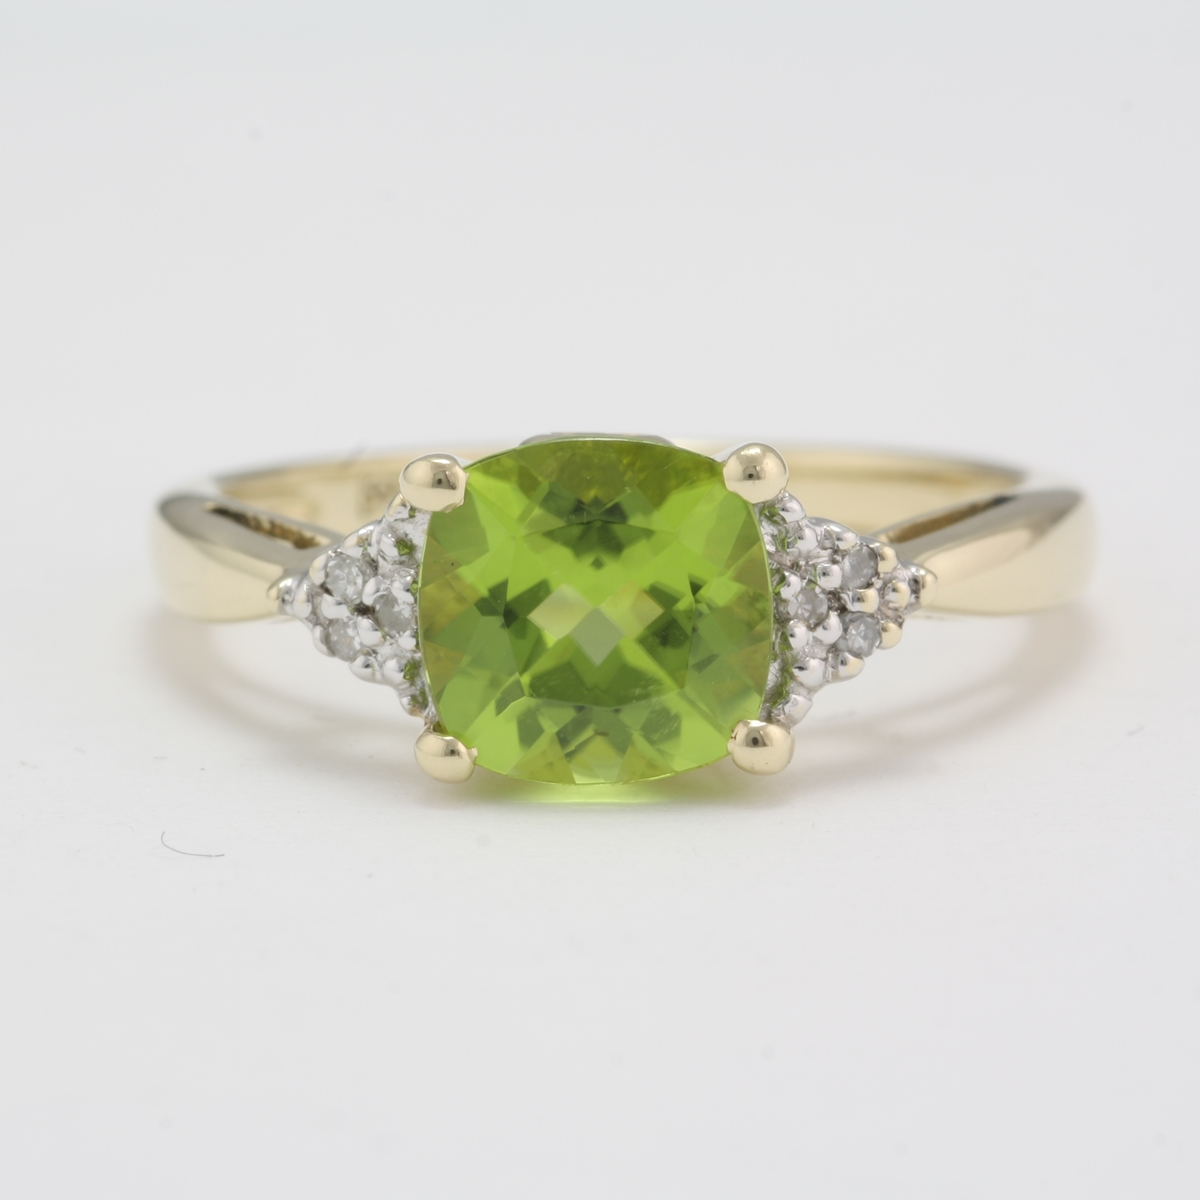 ring product rings jewellery diamond peridot amp world gold white wedding crisscross